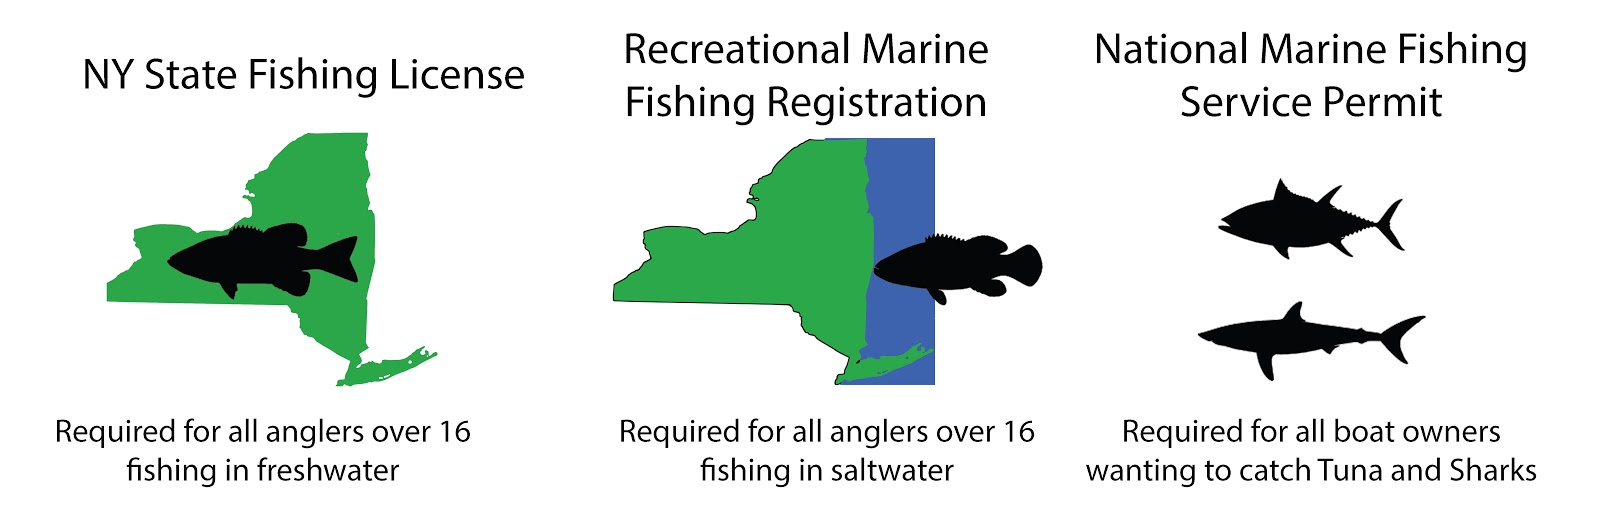 Getting A New York Fishing License A Quick Guide